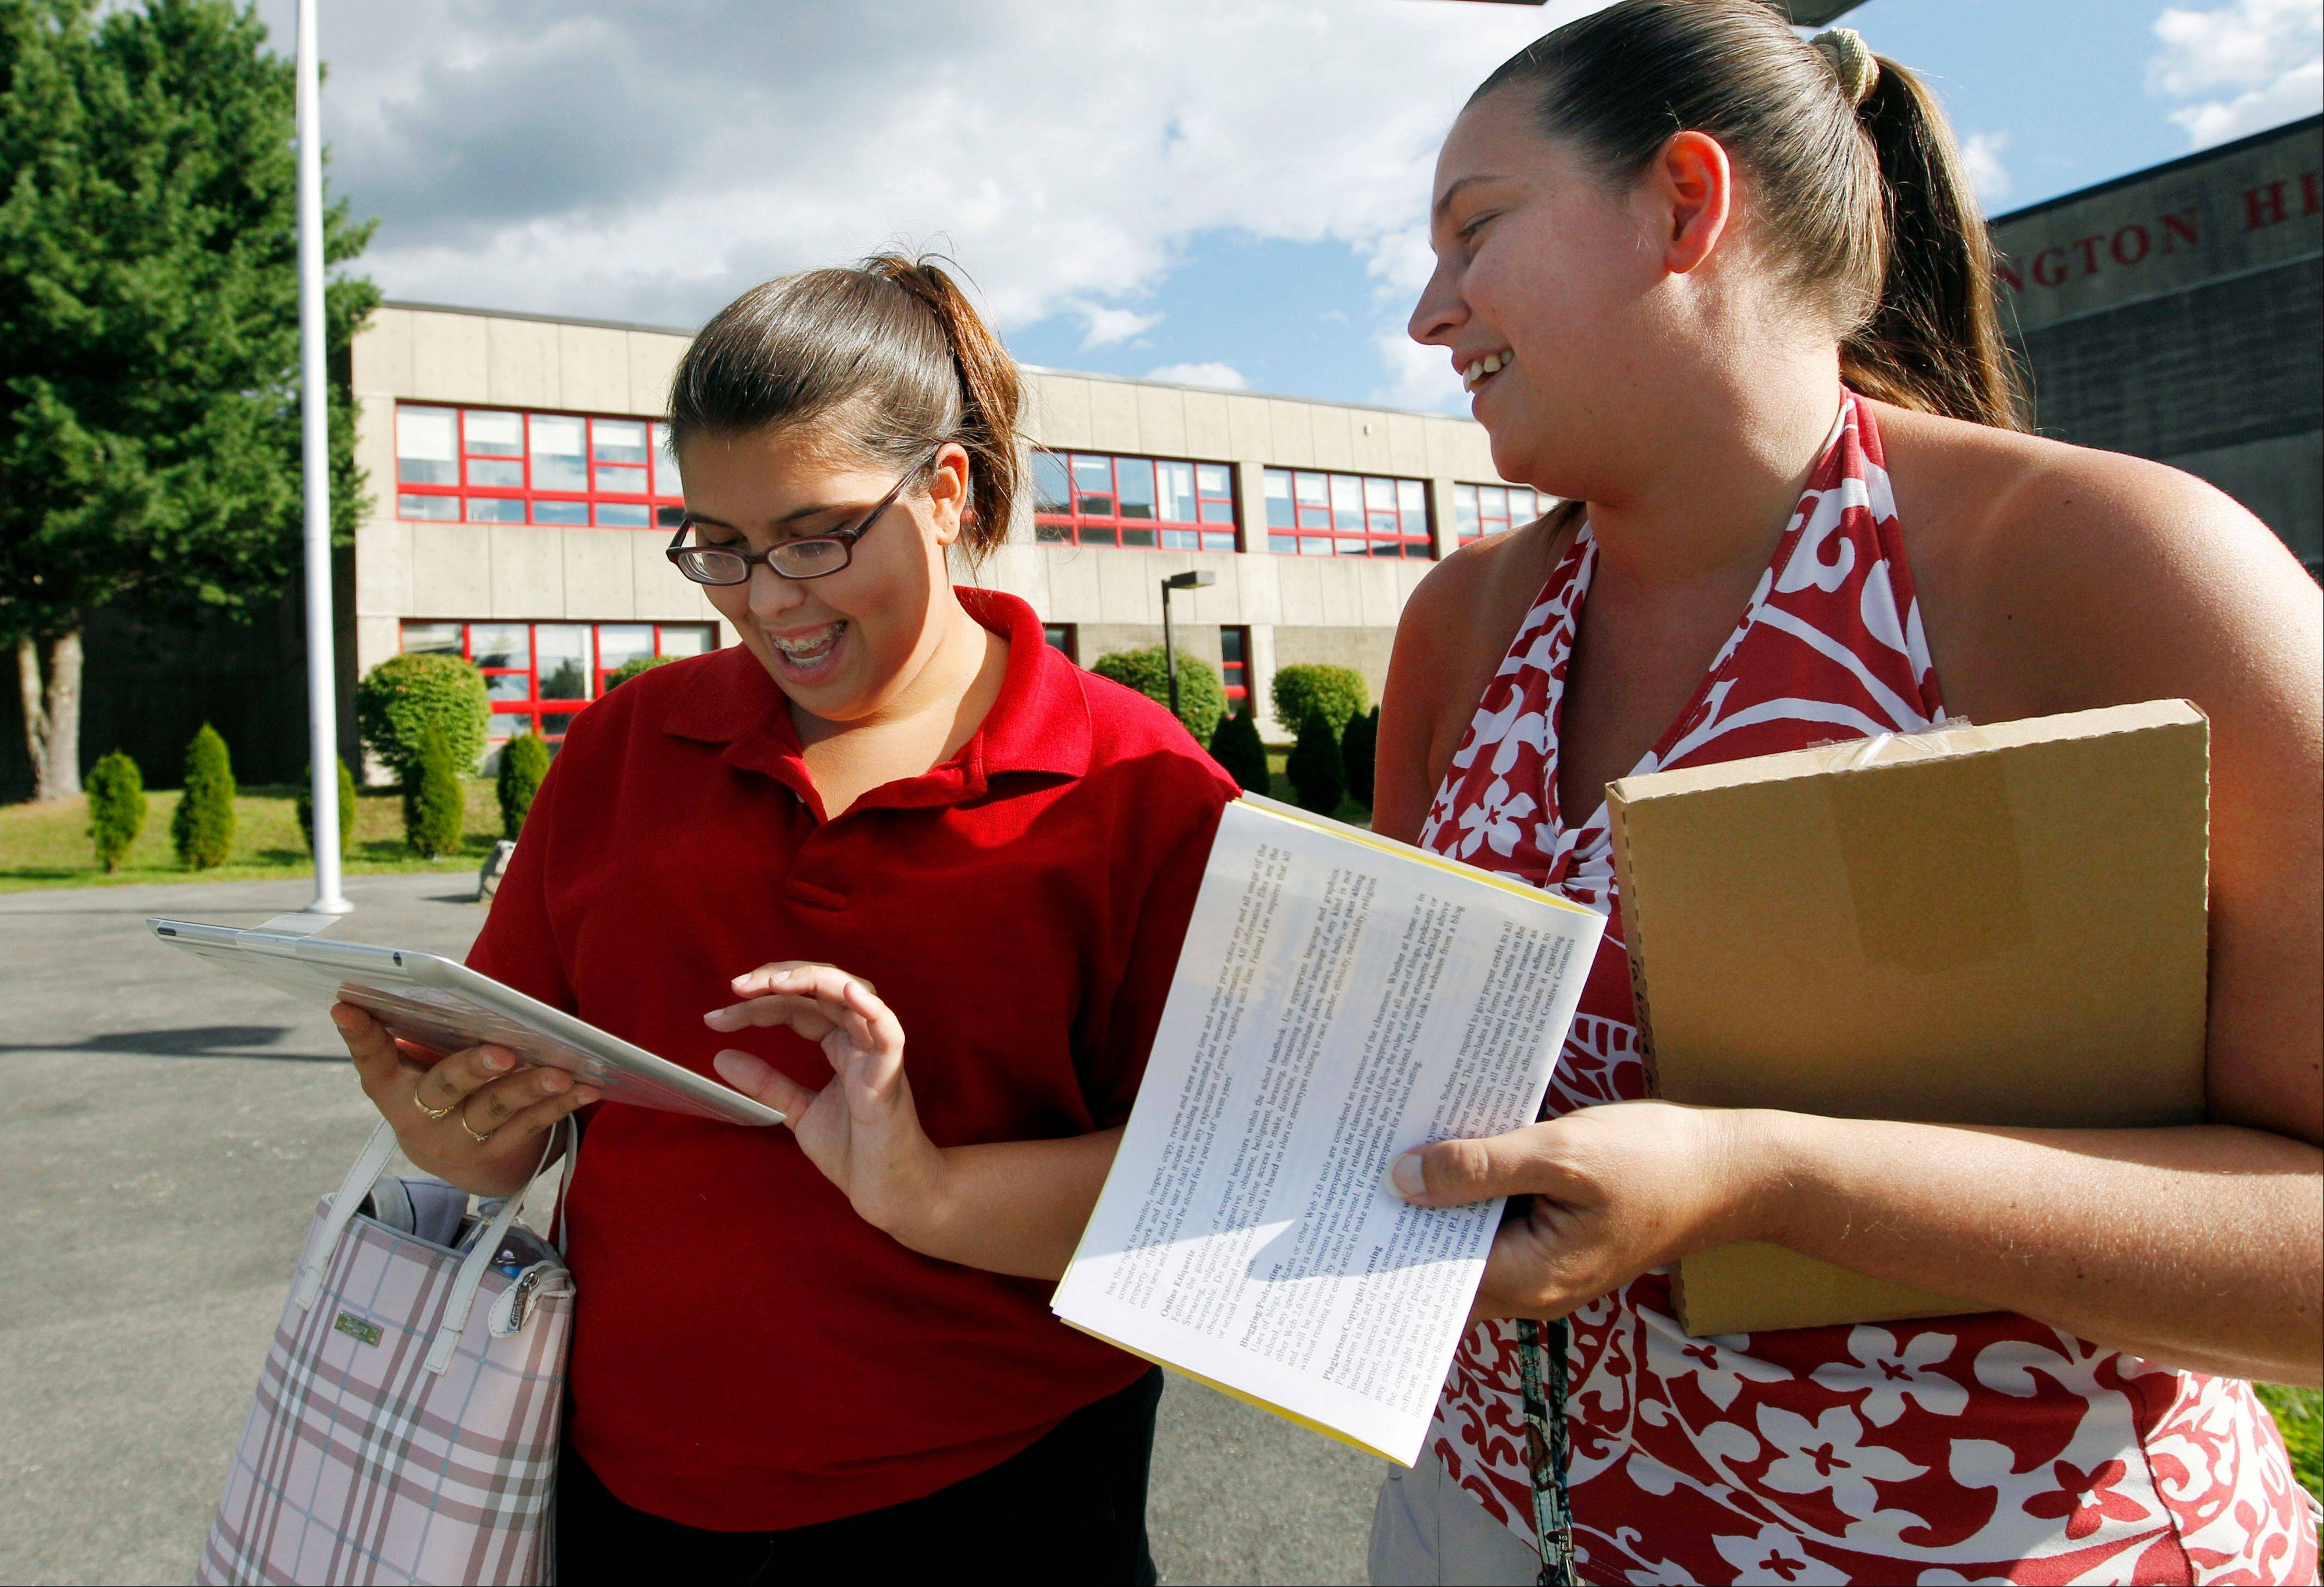 Senior Sabrina Pereira, 17, left, and her mother, Joanne Sullivan, check out her new iPad outside Burlington High School in Burlington, Mass. Burlington is giving iPads this year to every one of its 1,000-plus high school students. Some classes will still have textbooks, but the majority of work and lessons will be on the iPads.